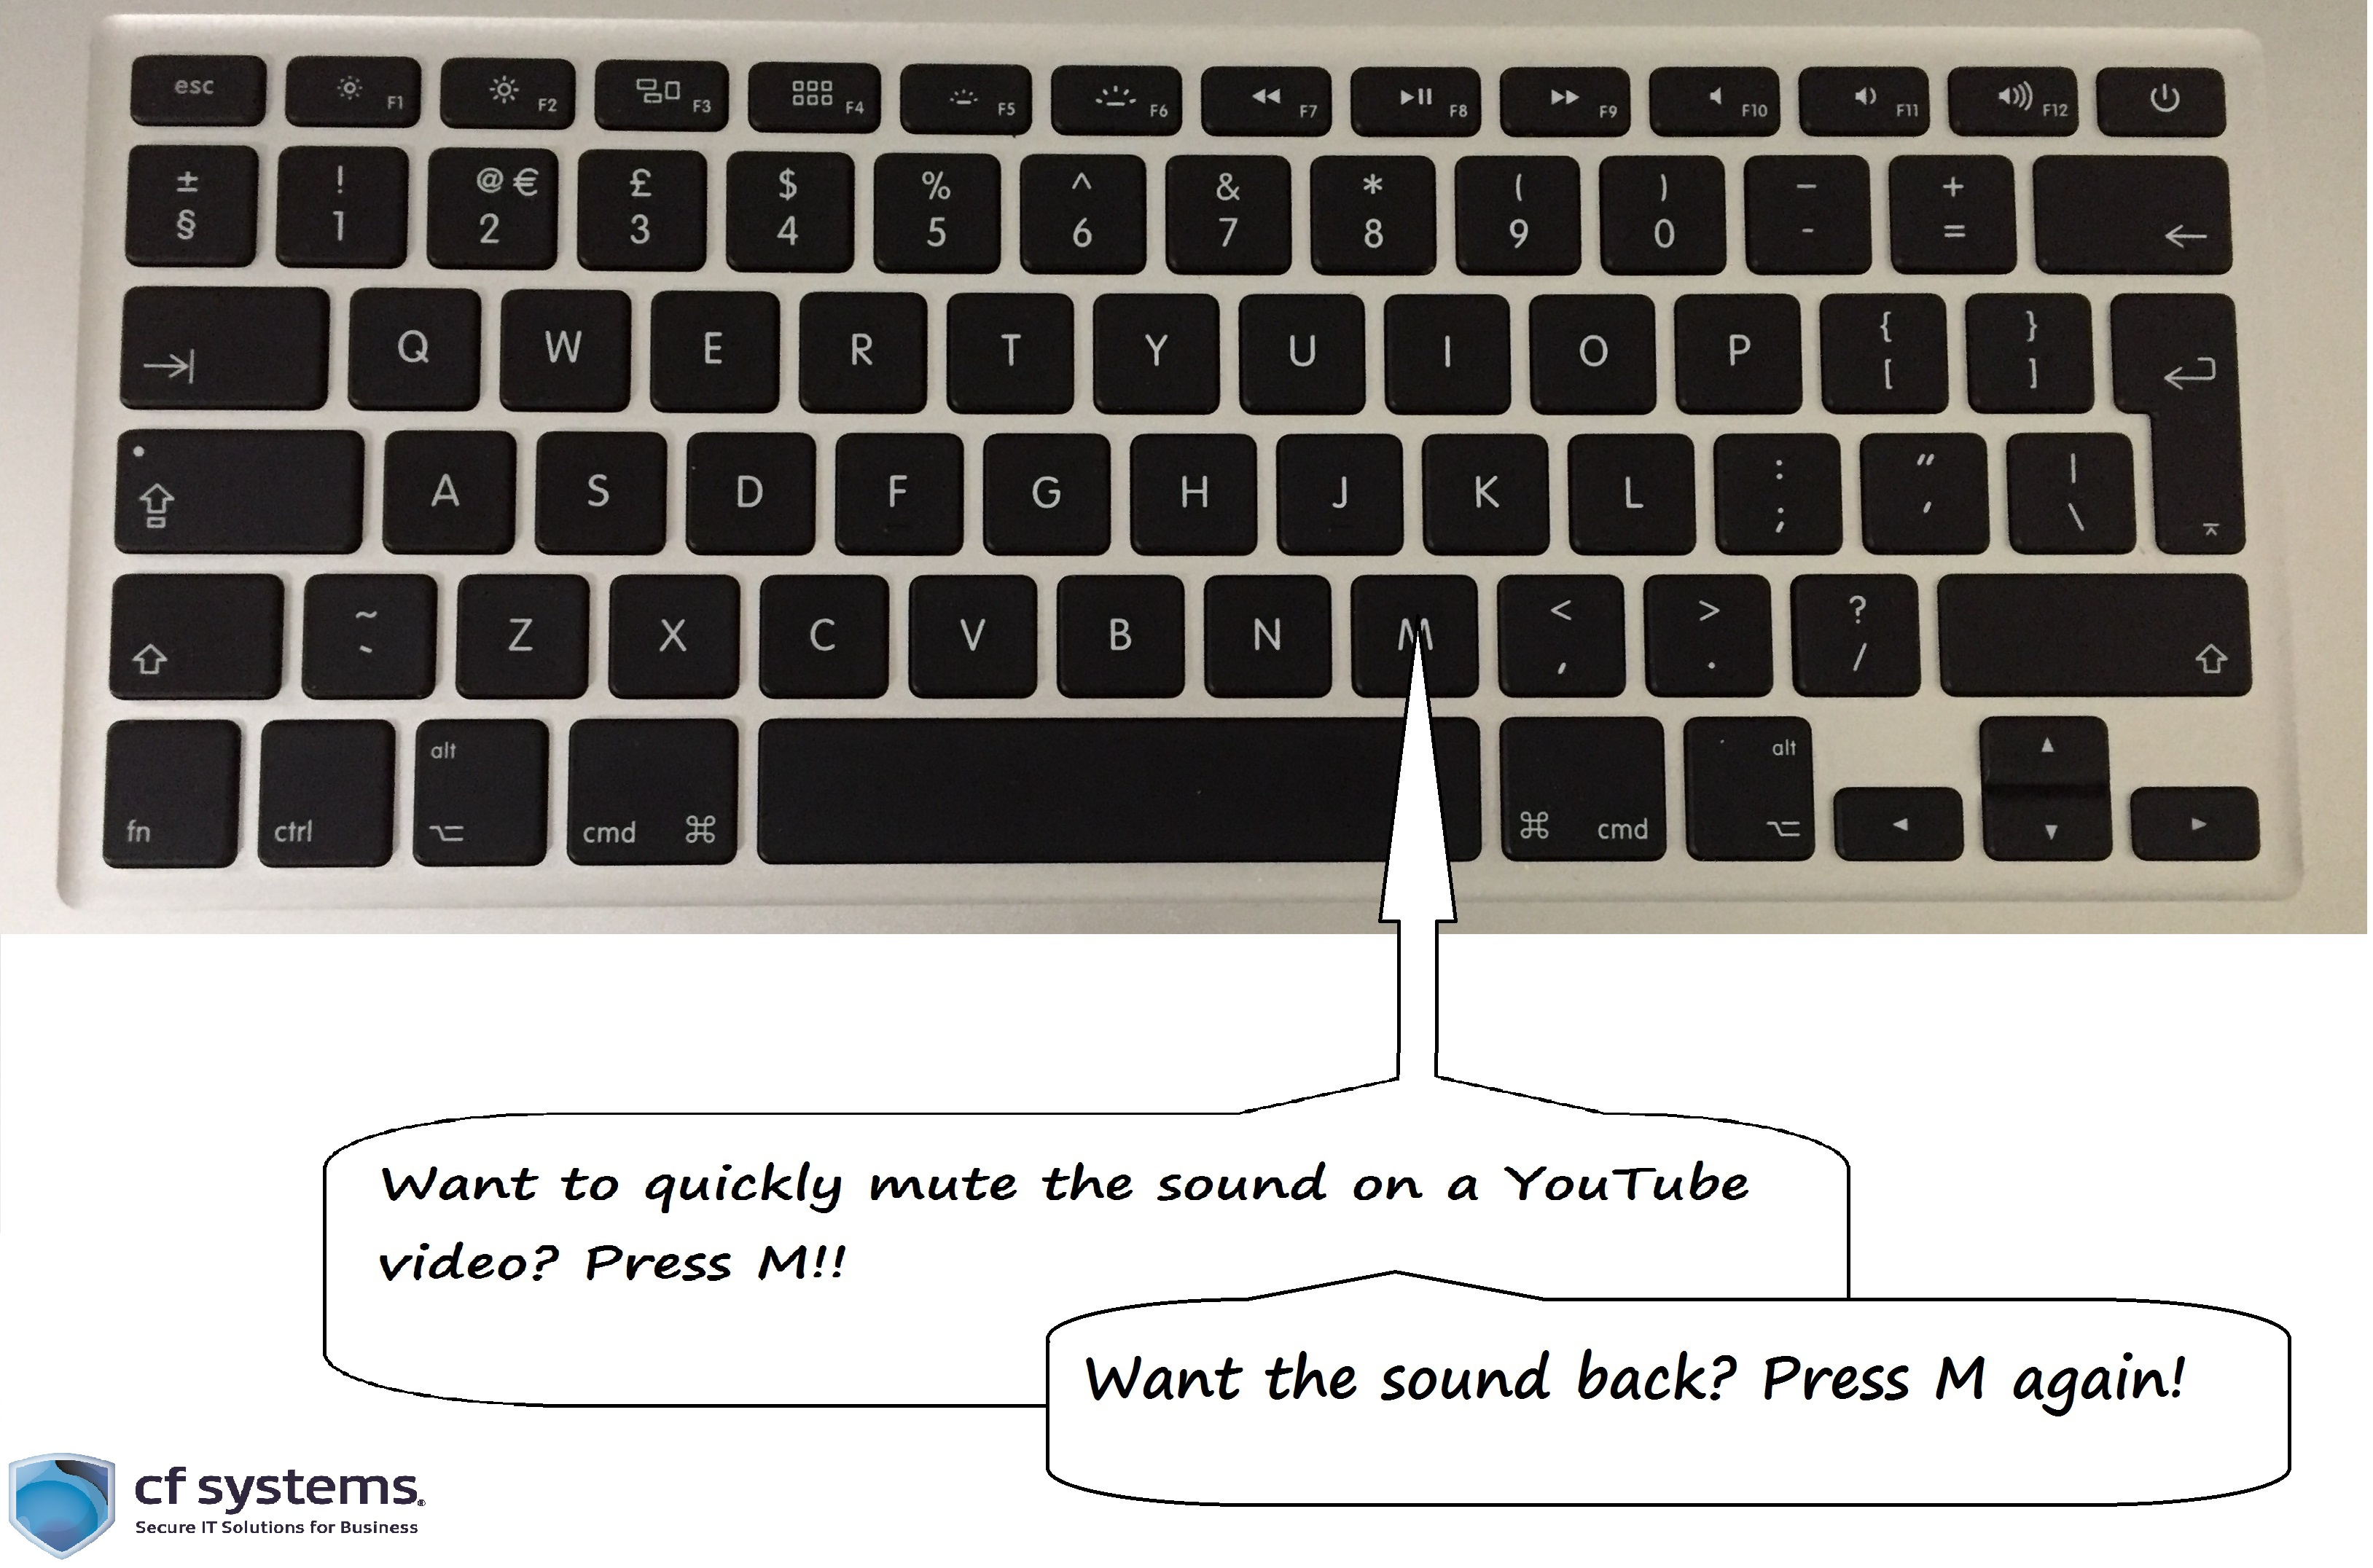 YouTube Tech Tip: mute a video from your keyboard